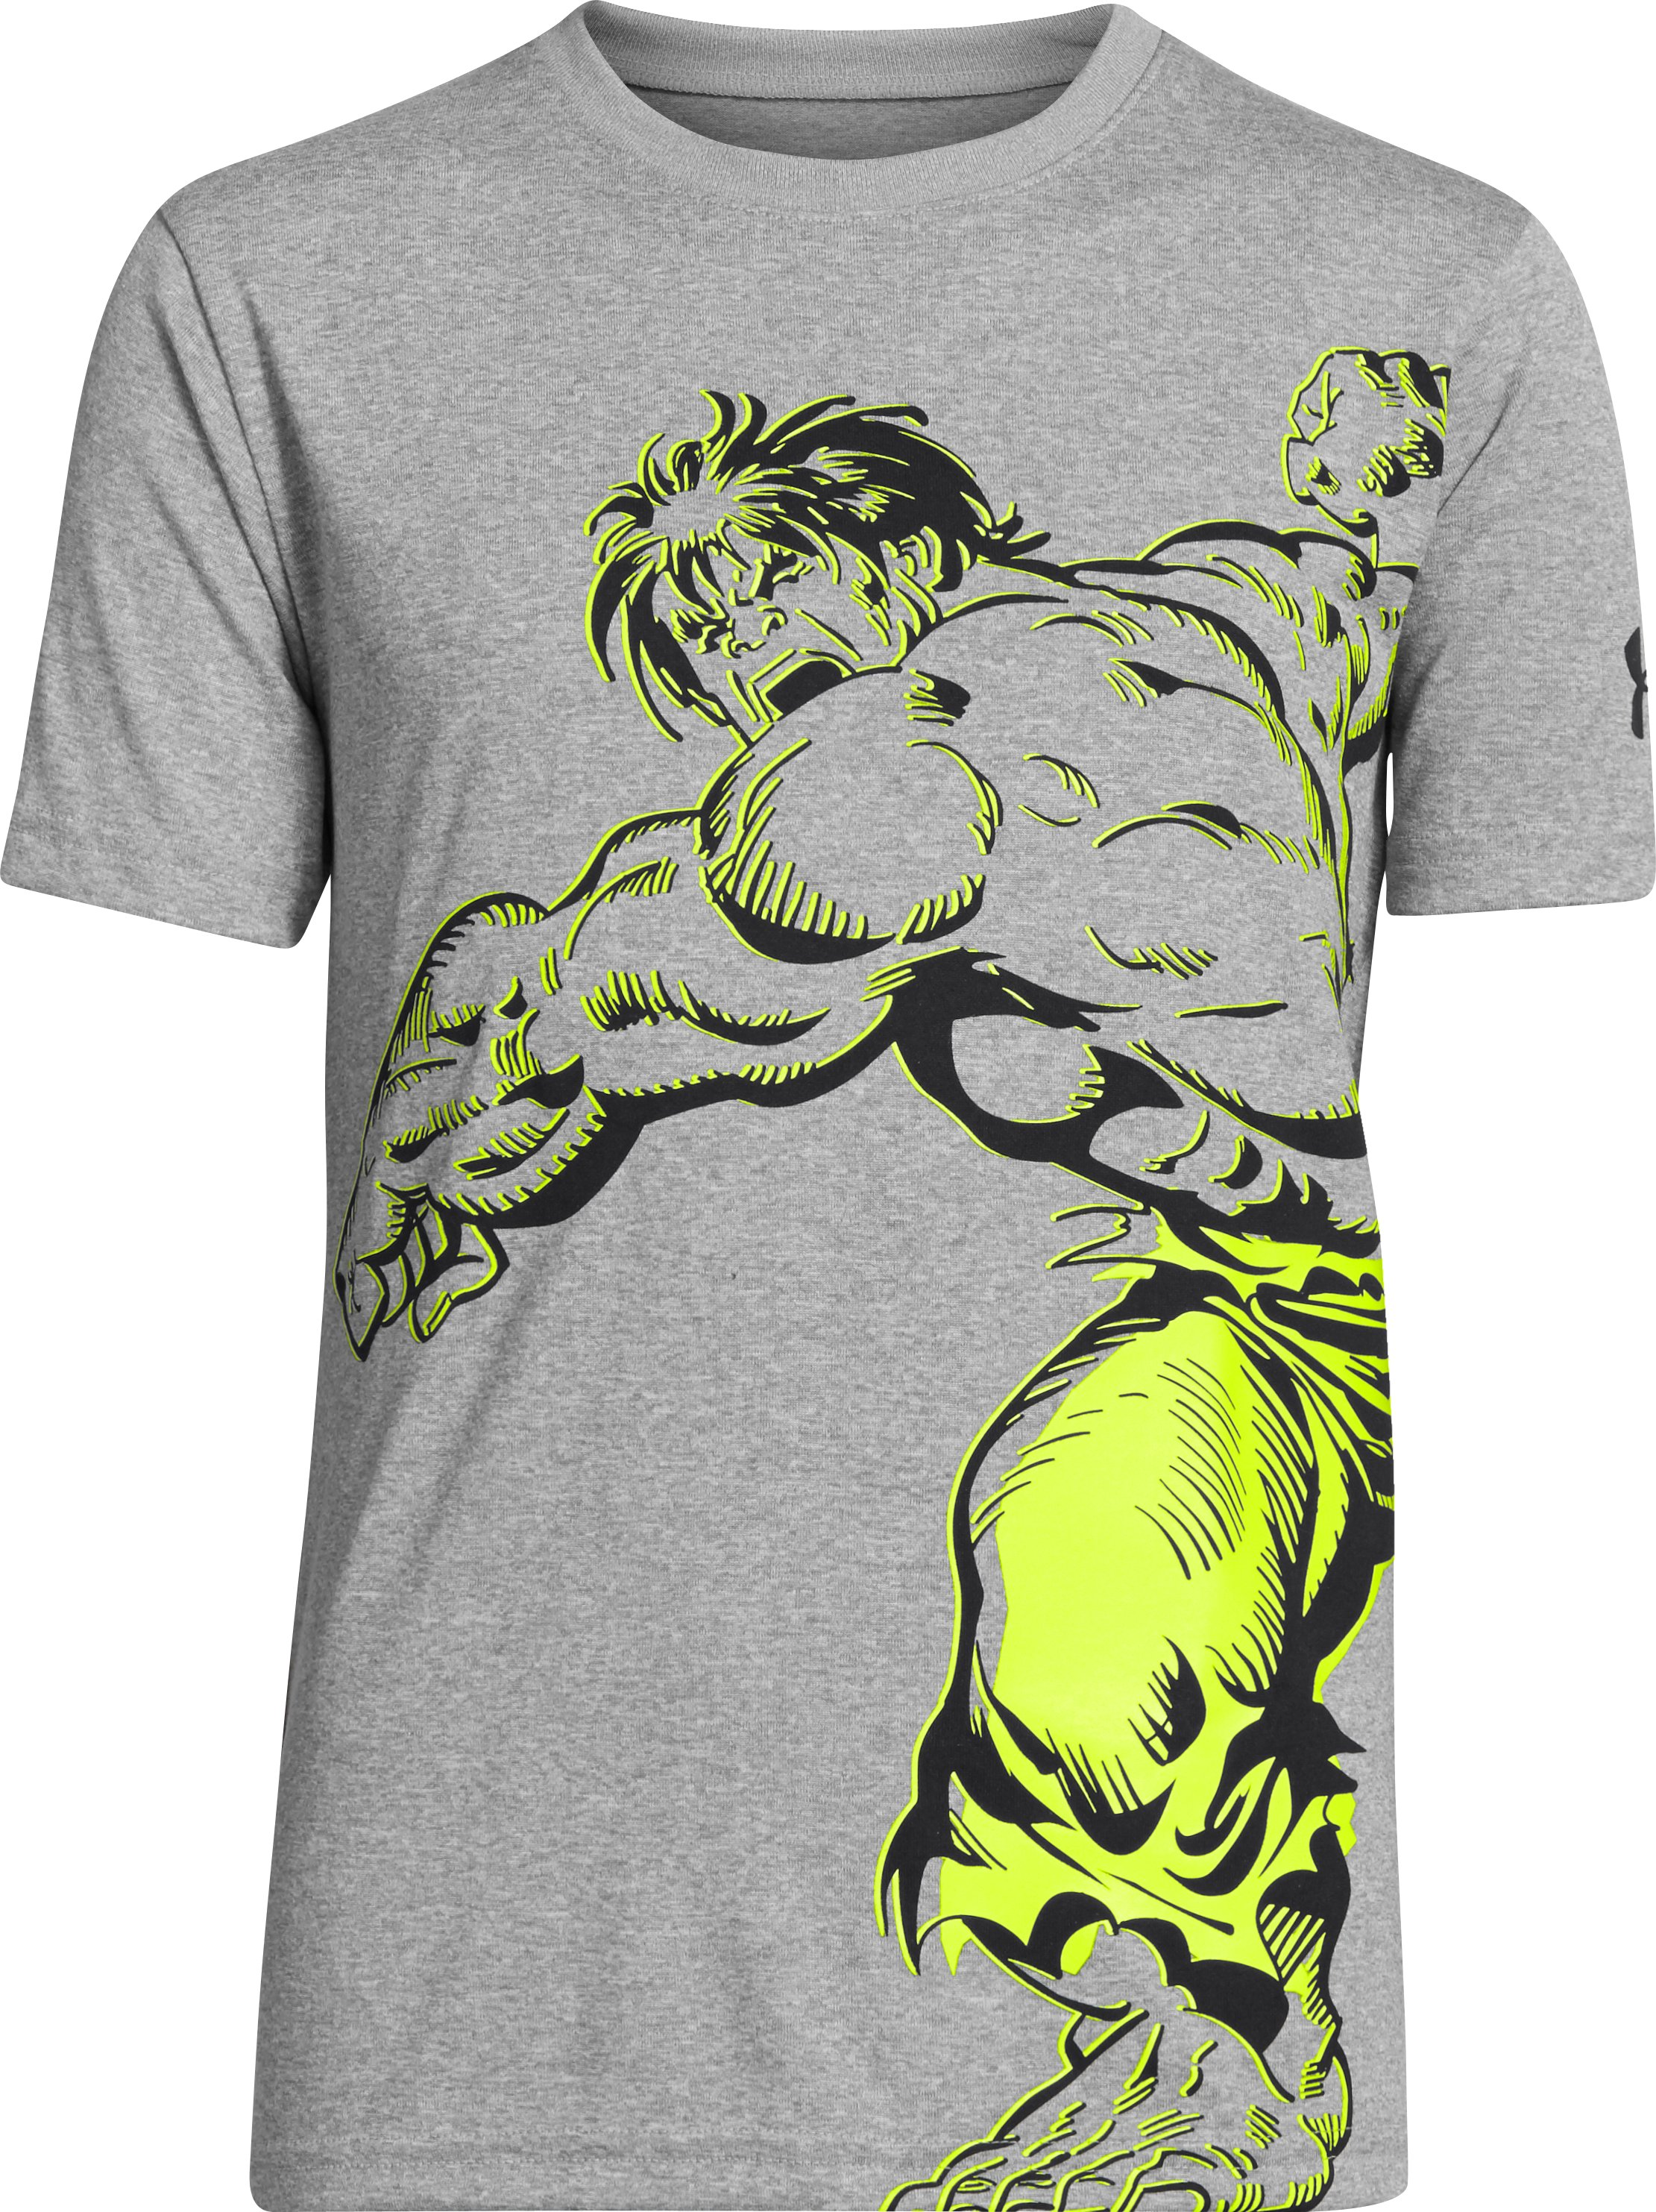 Boys' Under Armour® Alter Ego Hulk Action T-Shirt, True Gray Heather, zoomed image